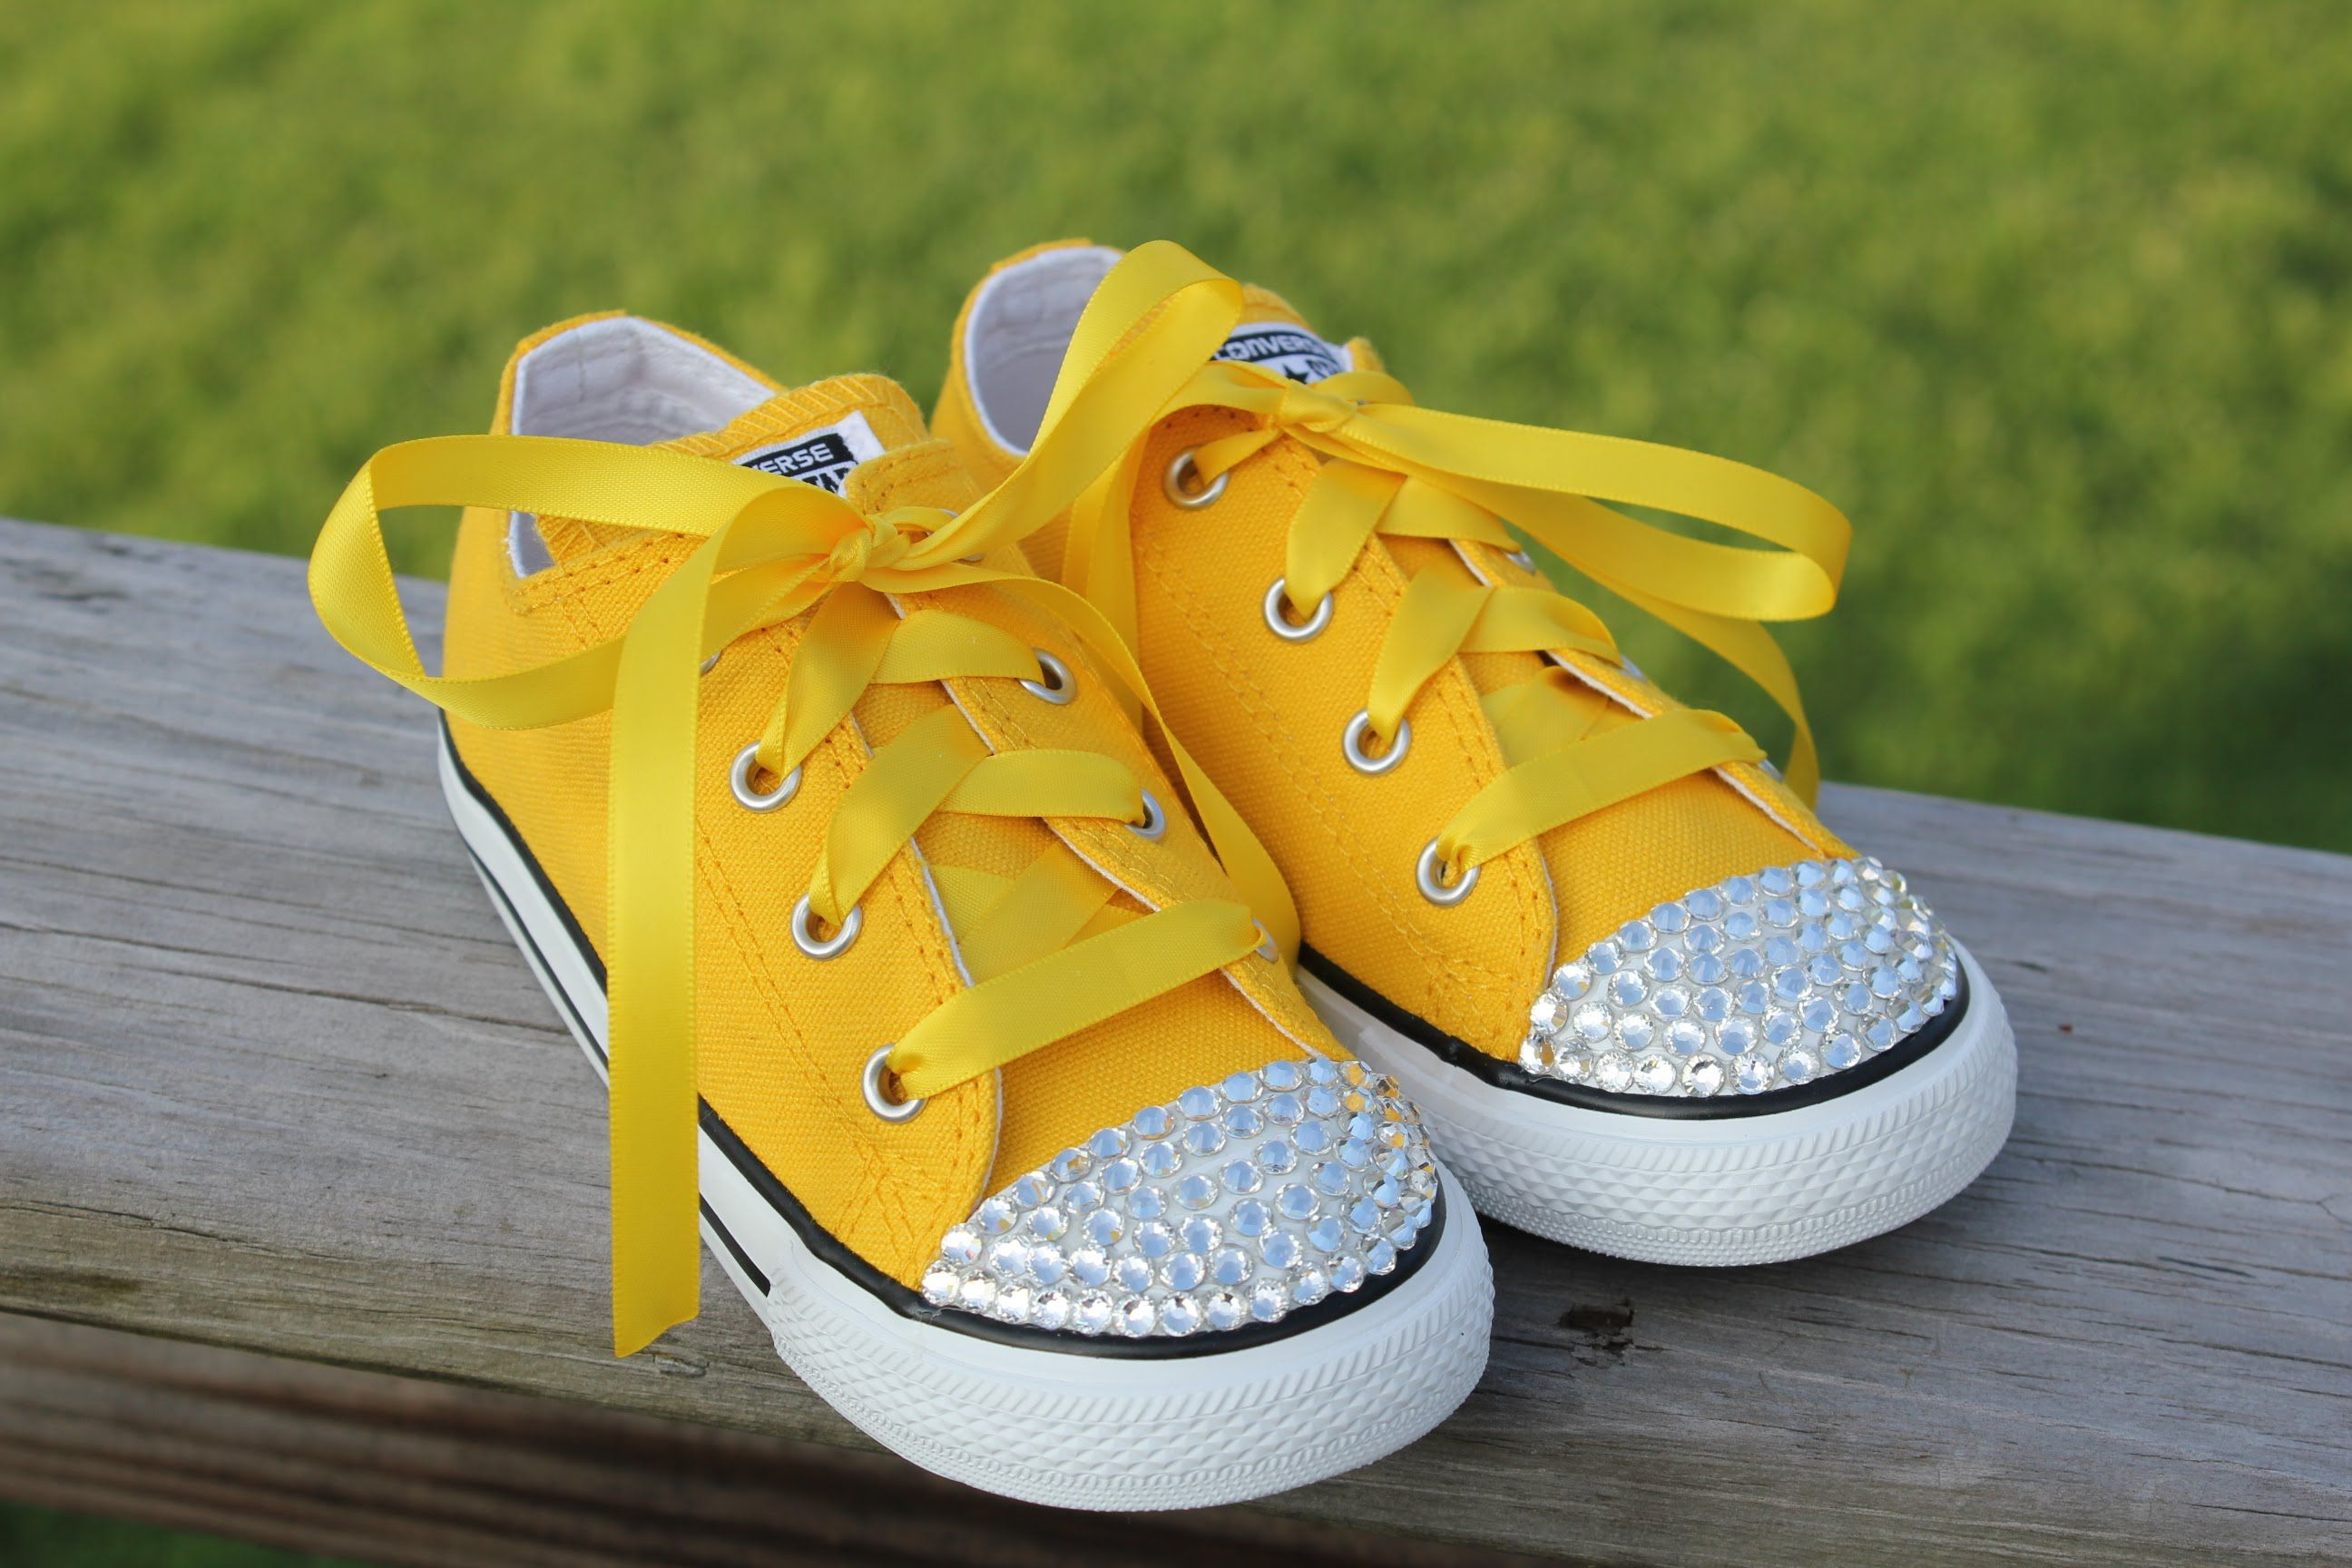 How To Bling Converse Shoes Add Crystals To The Toes Of Shoes